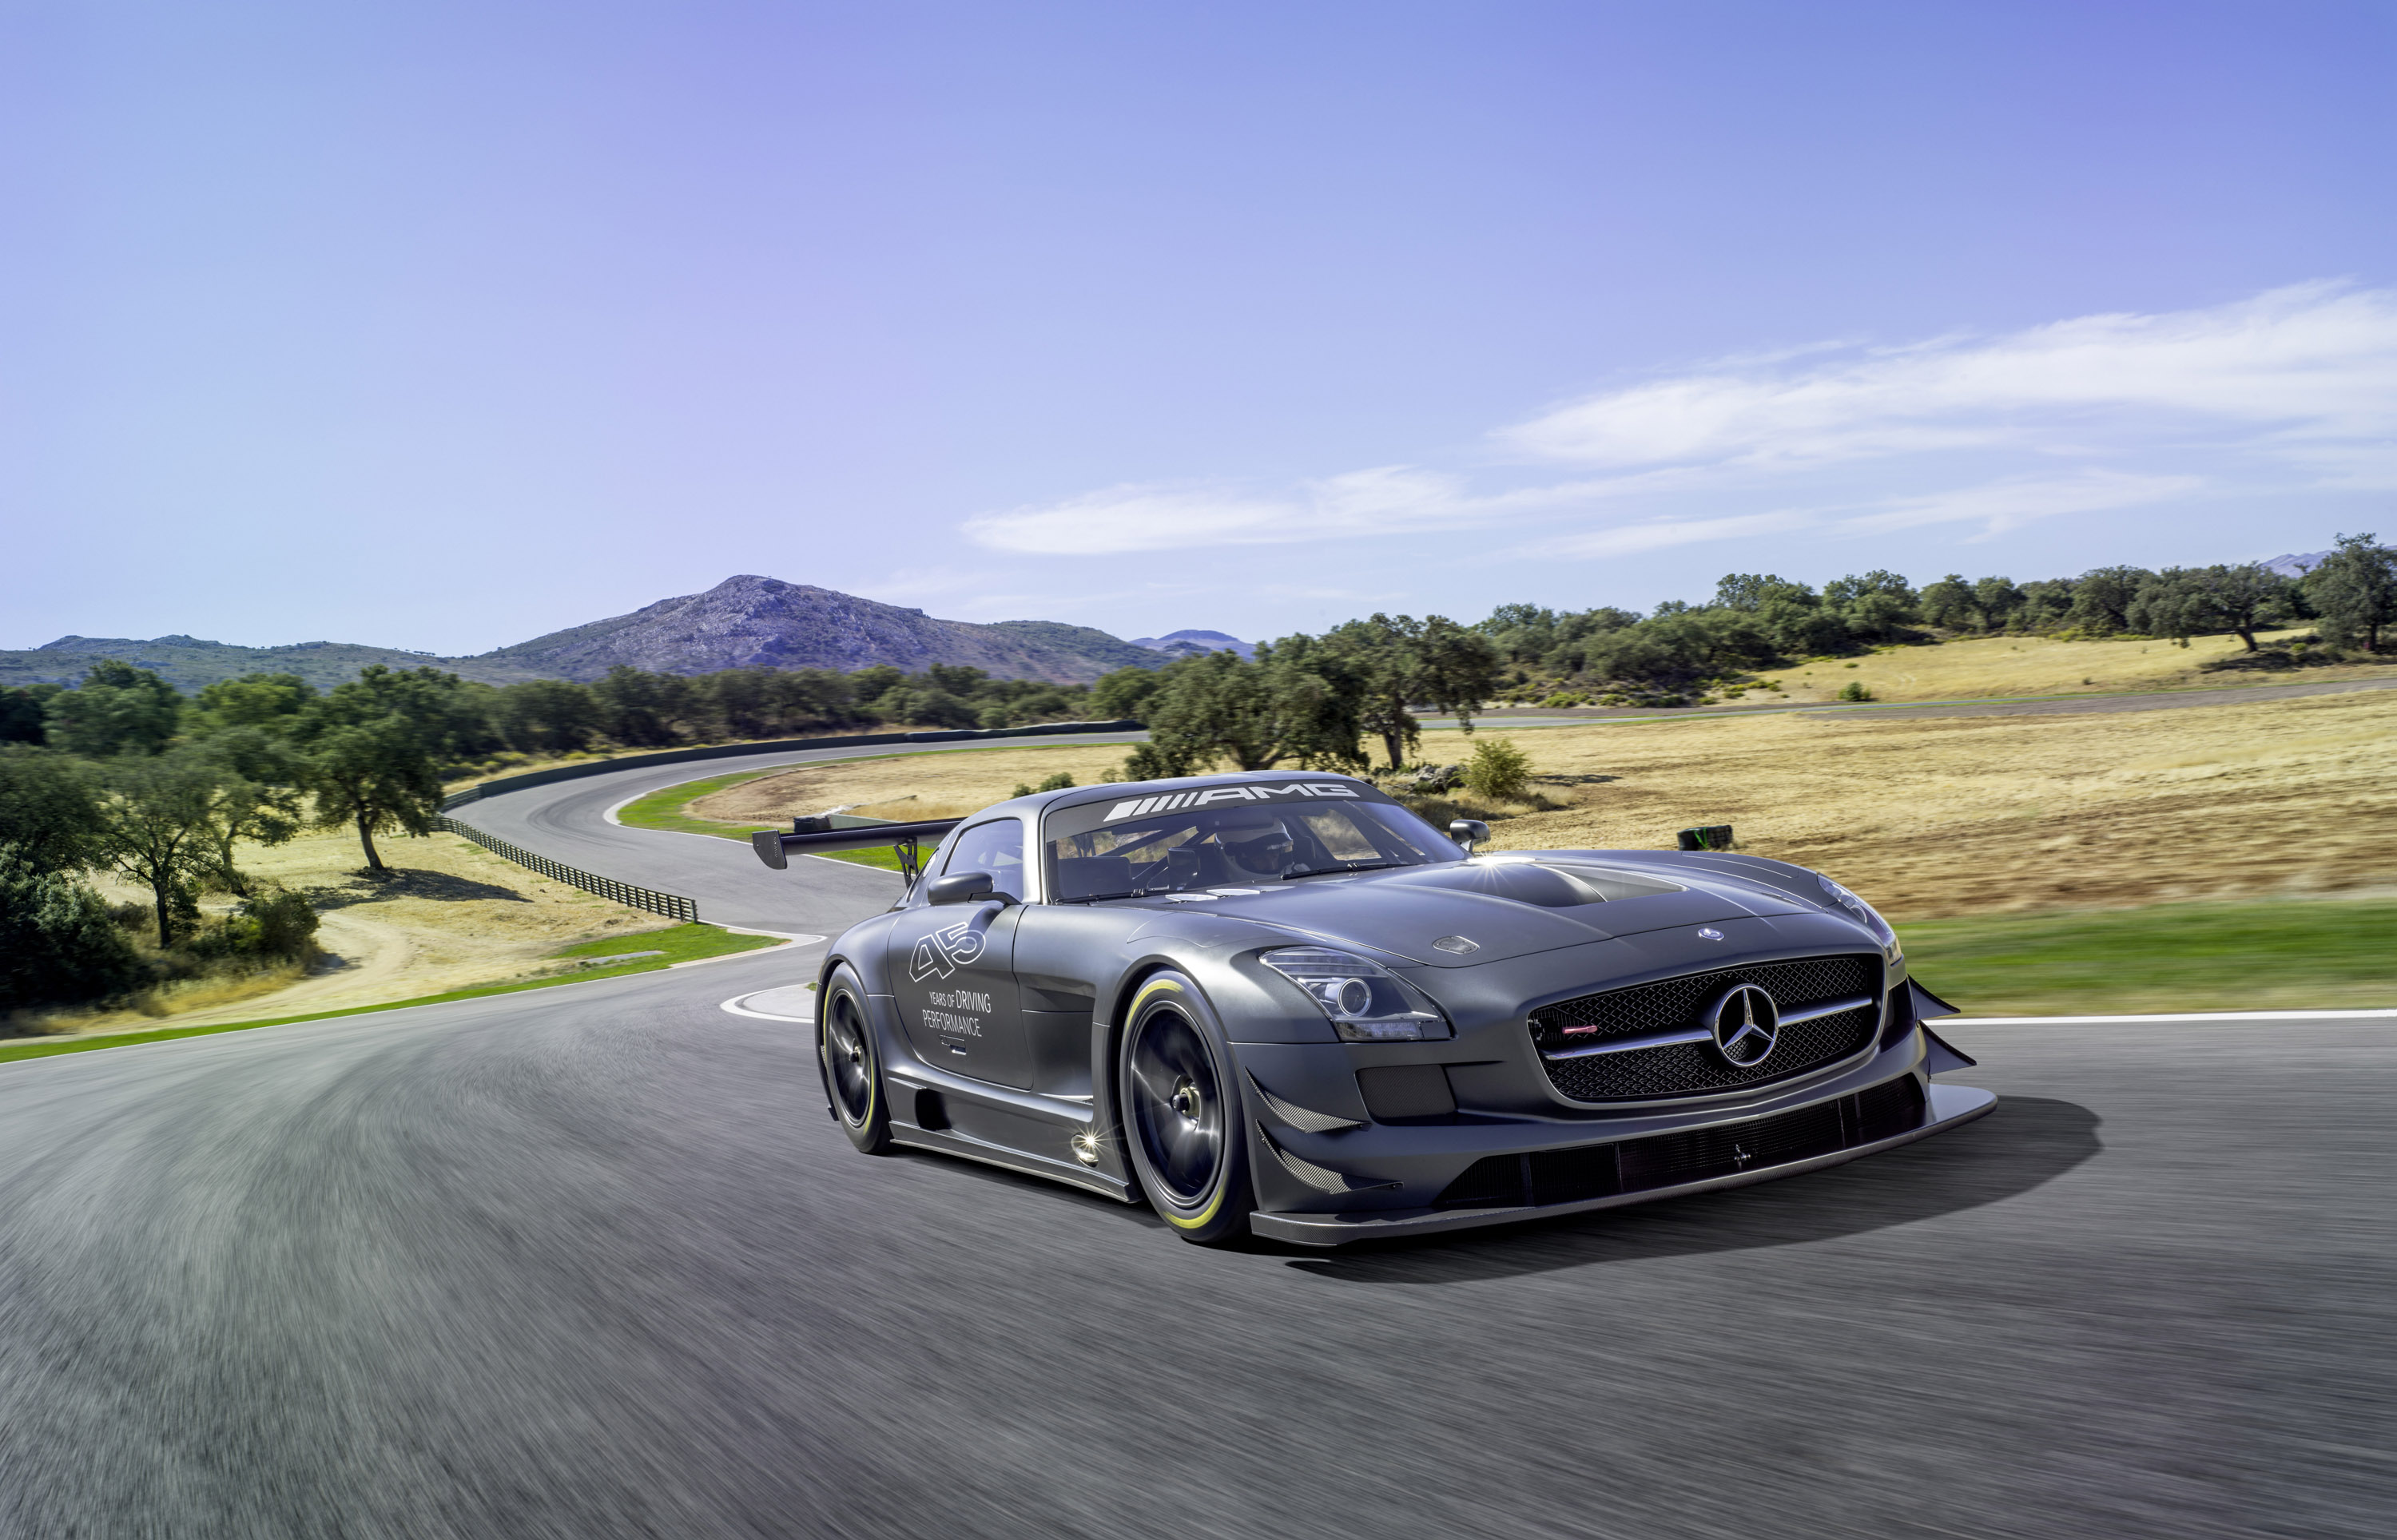 Mercedes benz sls amg gt3 45th anniversary price 446 250 for Mercedes benz sls price